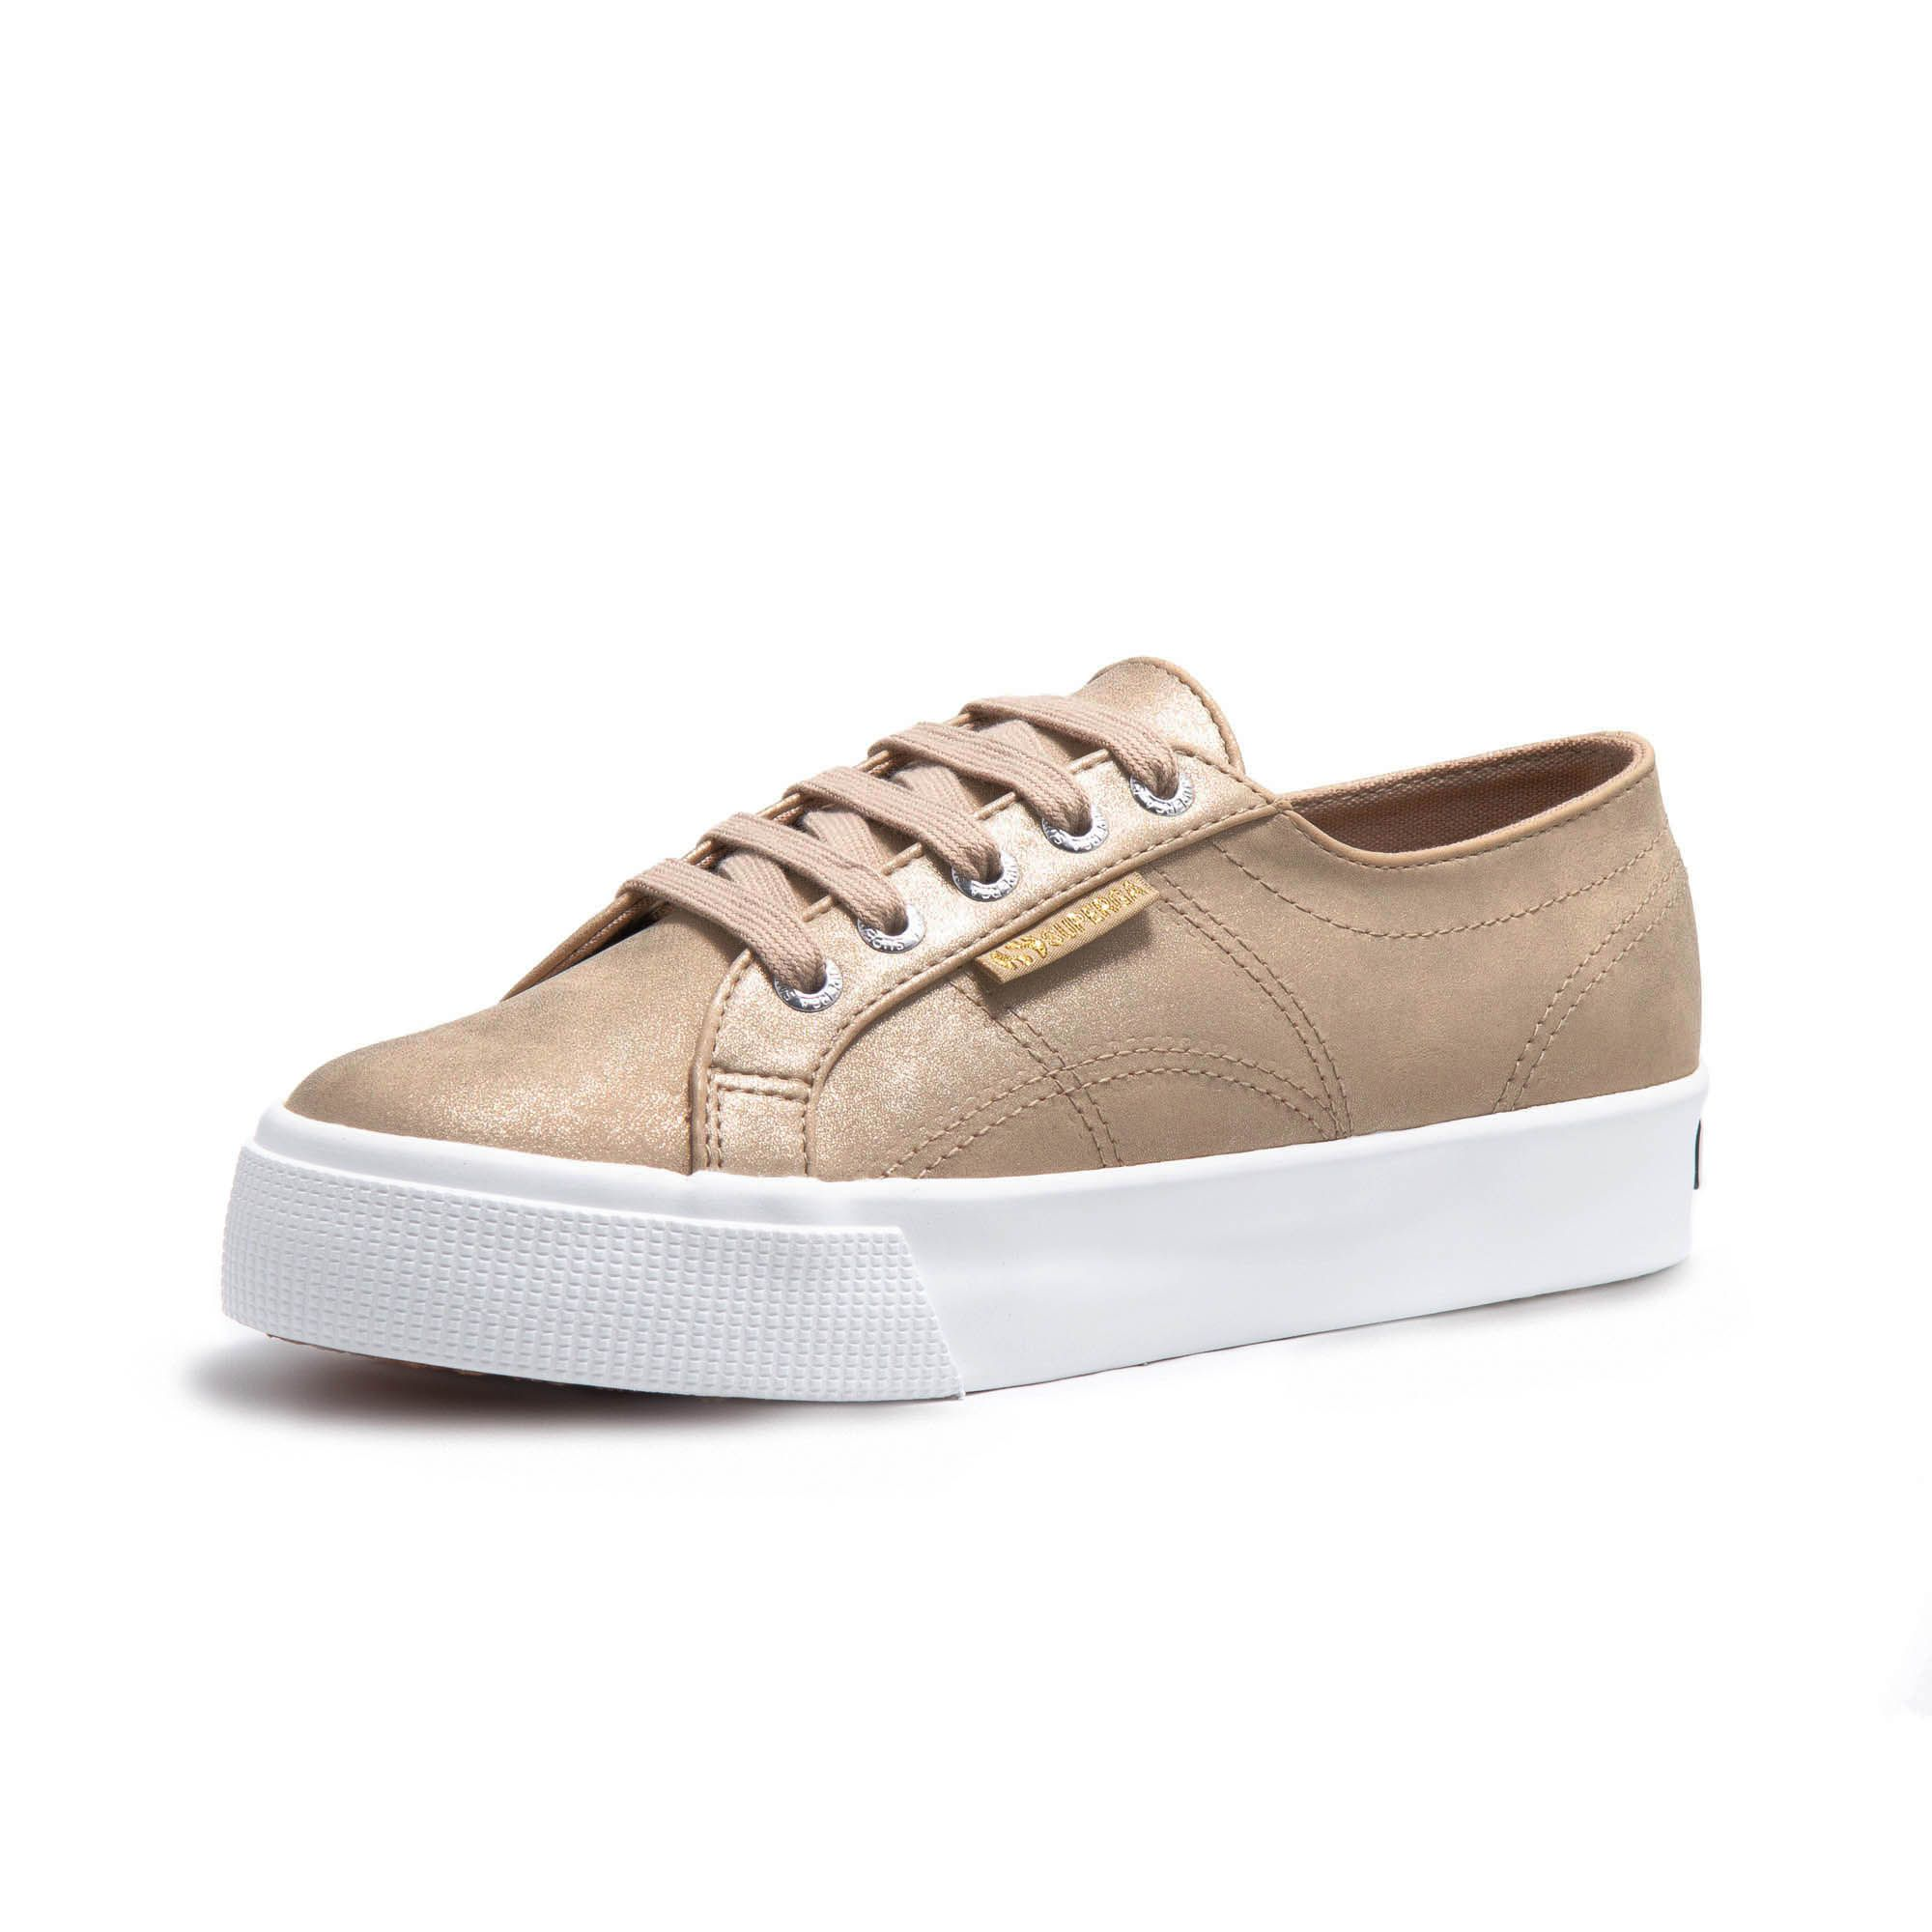 2730 FROSTEDSYNTSUEW TAUPE-GOLD